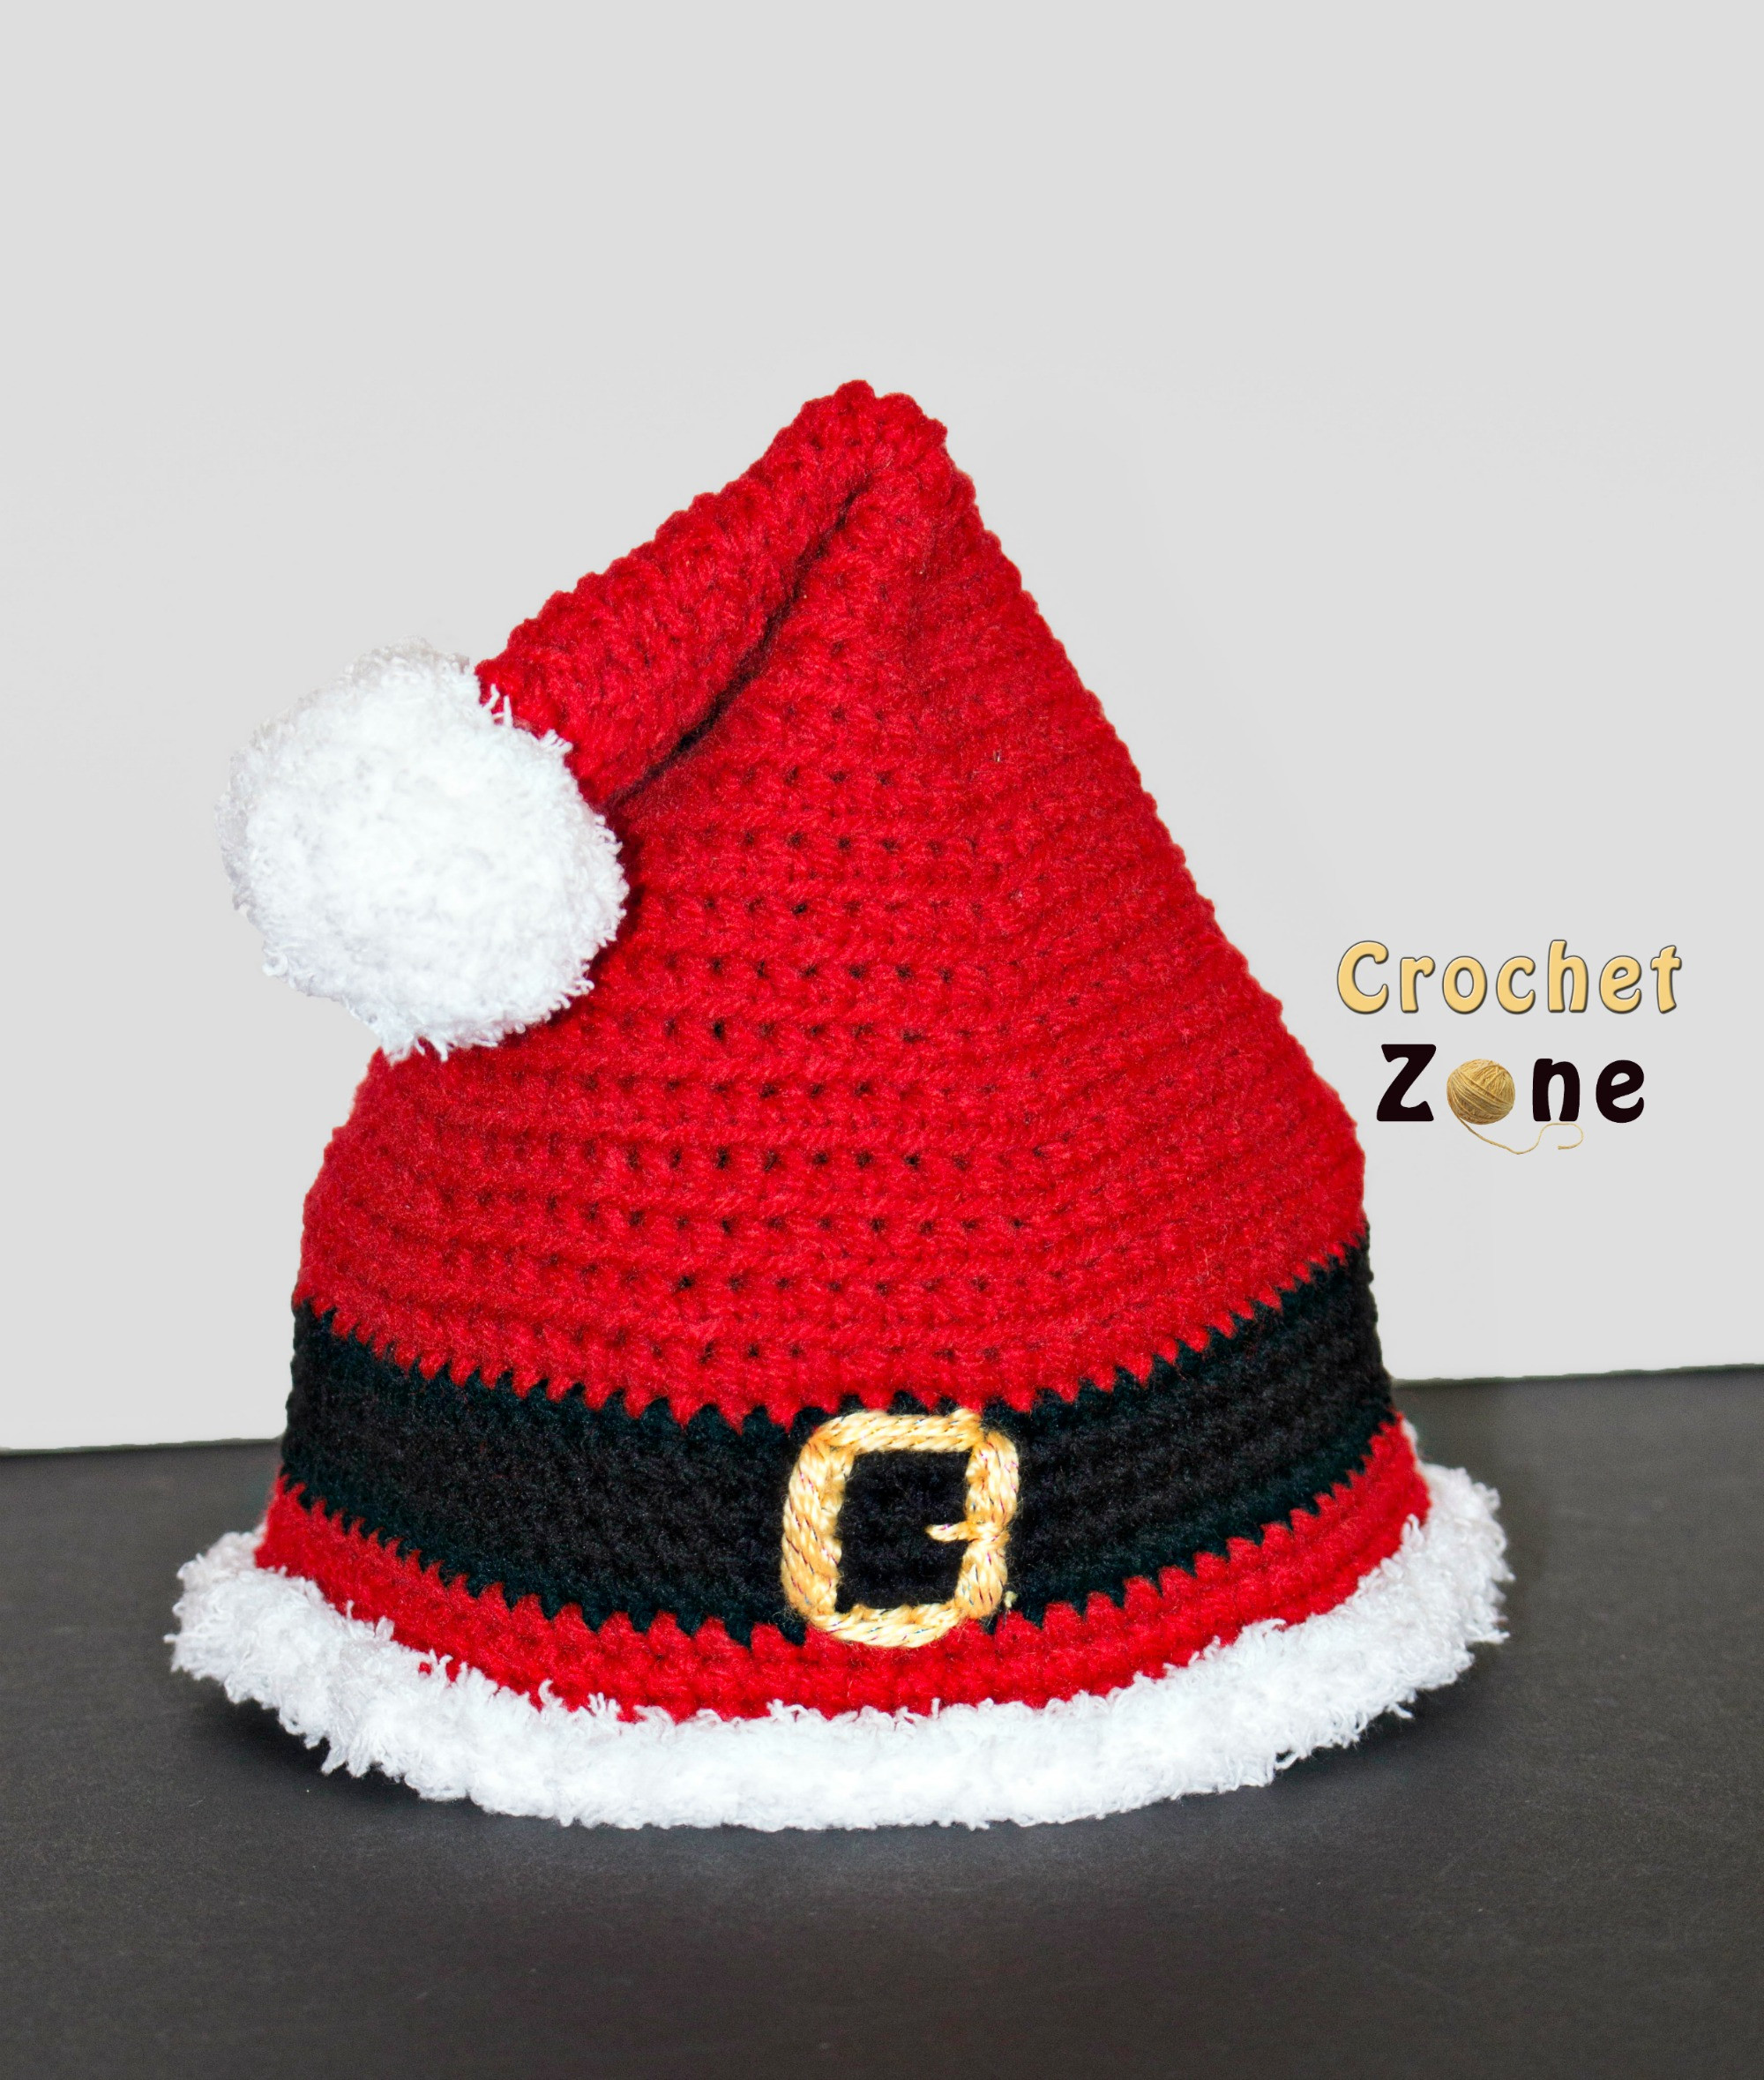 Fresh Crochet Zone All Things Crochet Santa Hat Pattern Of Awesome 49 Pictures Santa Hat Pattern